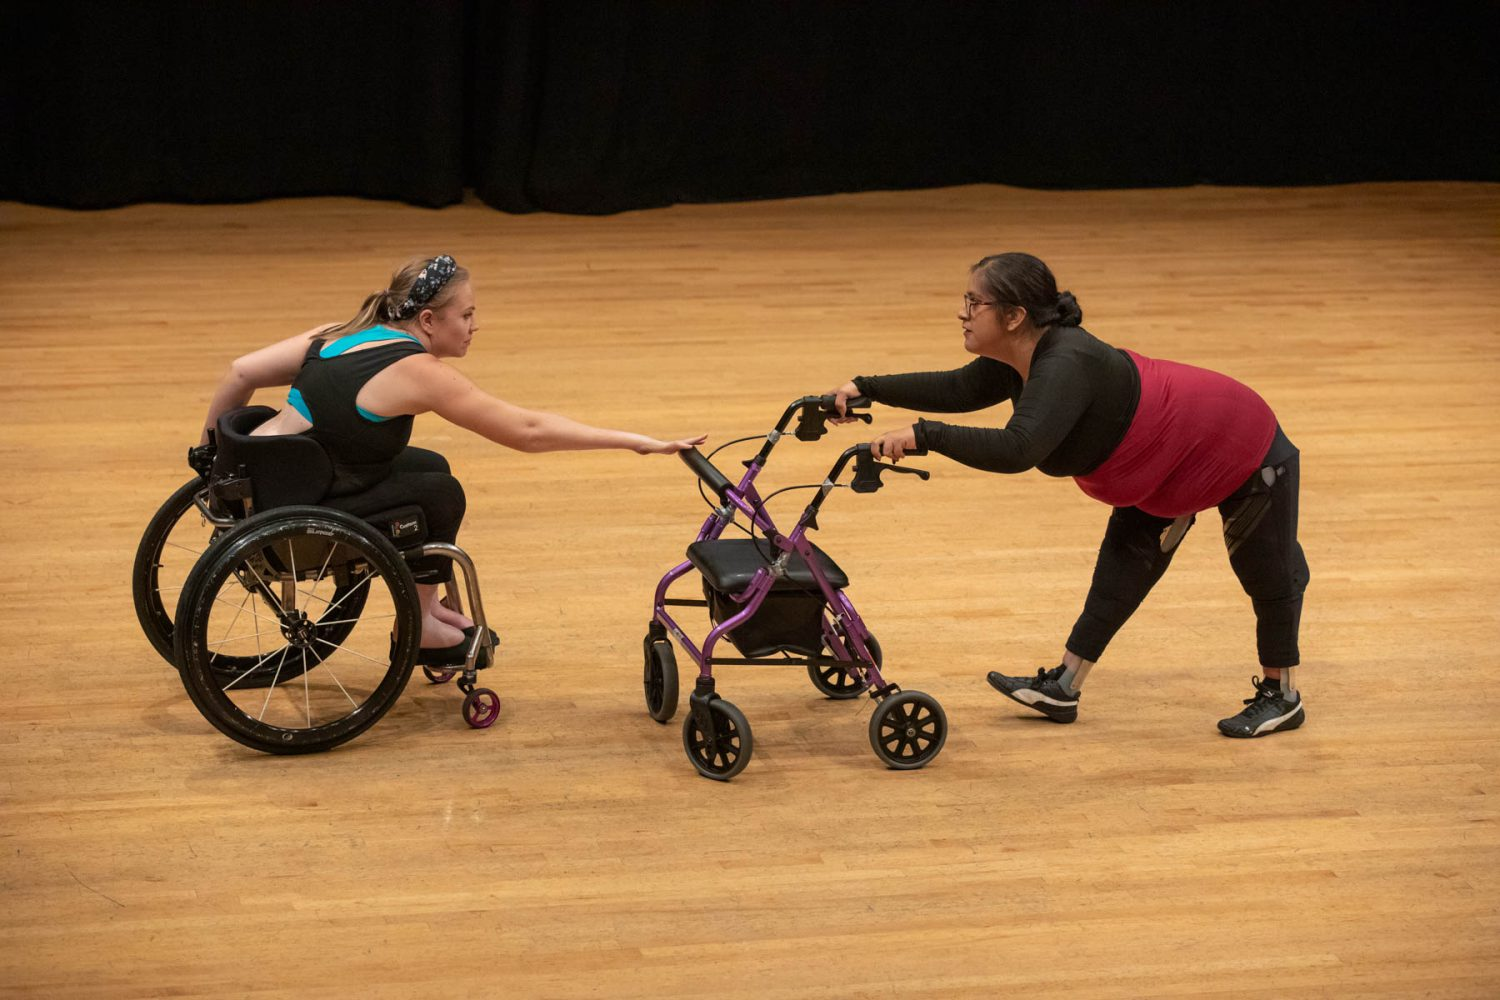 Harmonie in her wheelchair with her back lowered and right arm extended out touching Pluto. Vanessa opposite of Pluto and Harmonie with her back lowered and hands holding Pluto's handles as she watches Harmonie.